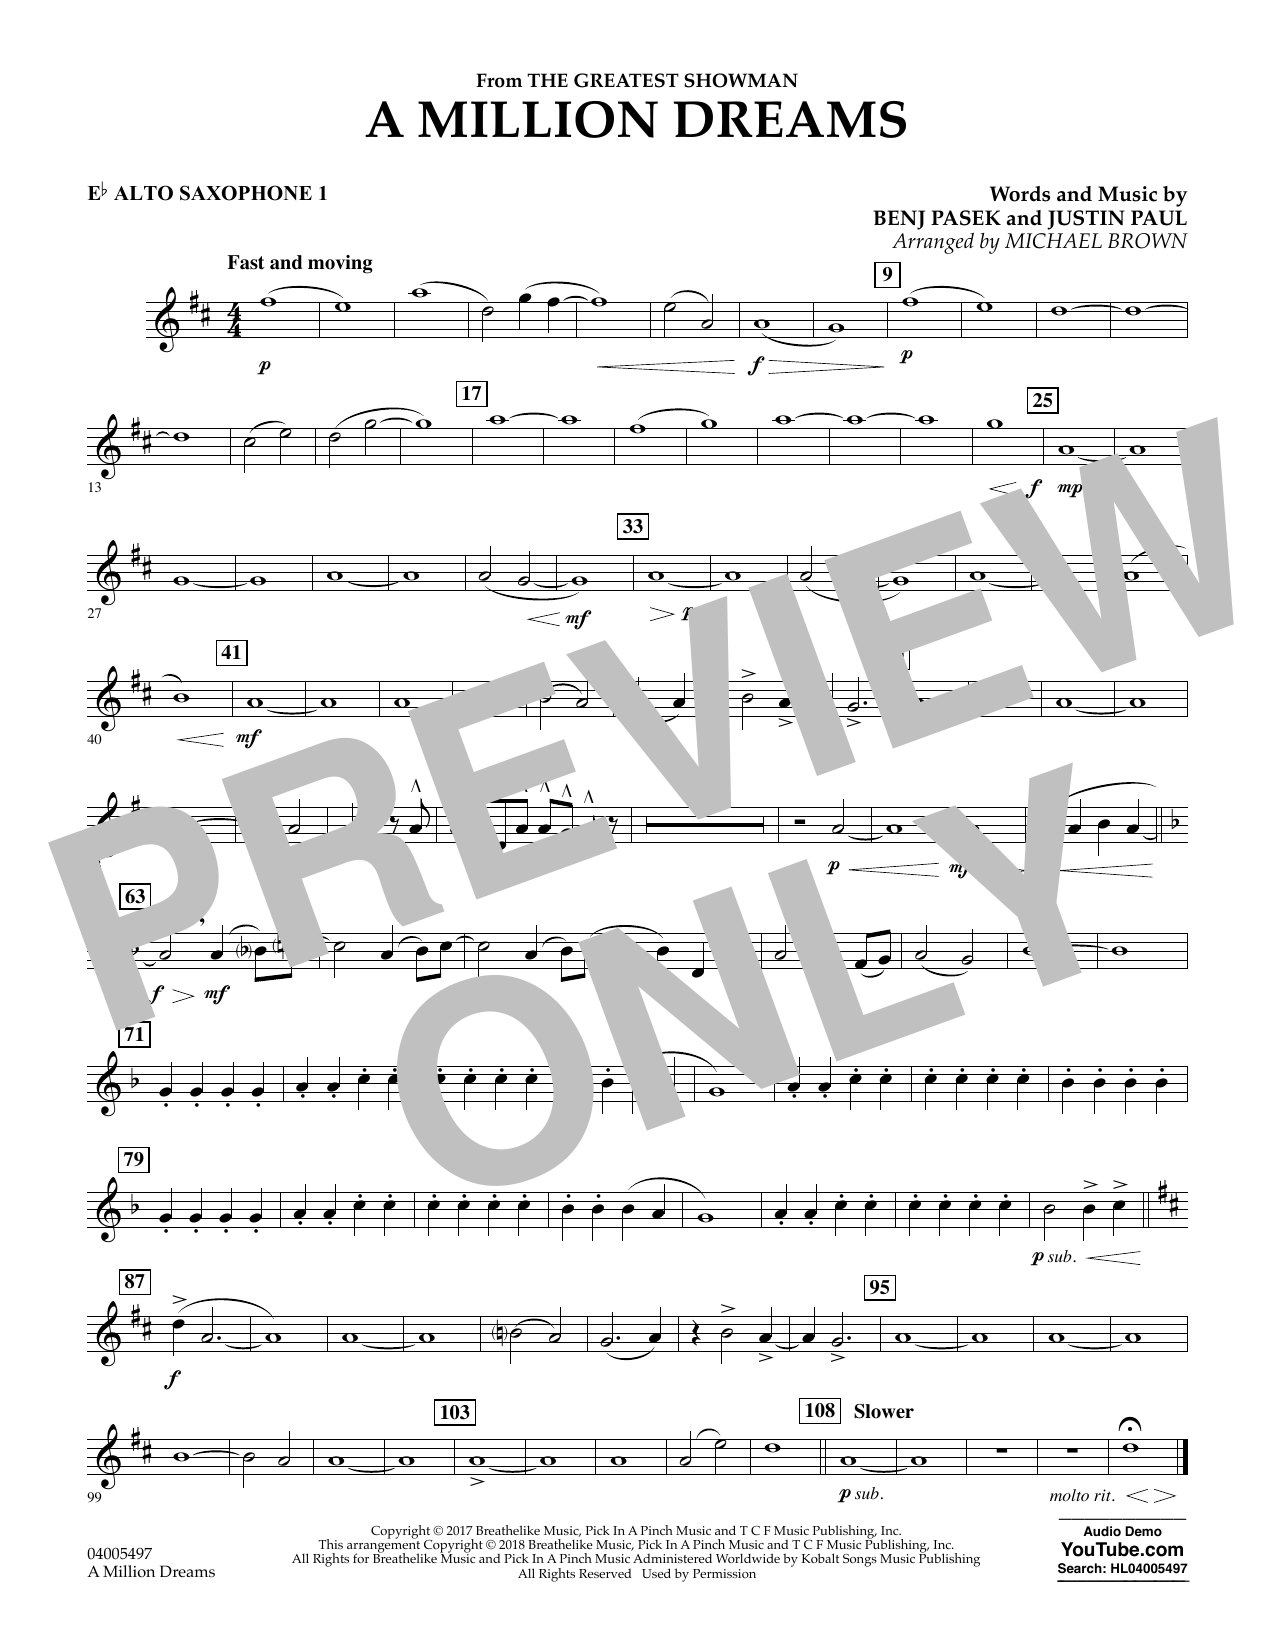 Pasek & Paul A Million Dreams (from The Greatest Showman) (arr. Michael Brown) - Eb Alto Saxophone 1 sheet music notes and chords. Download Printable PDF.